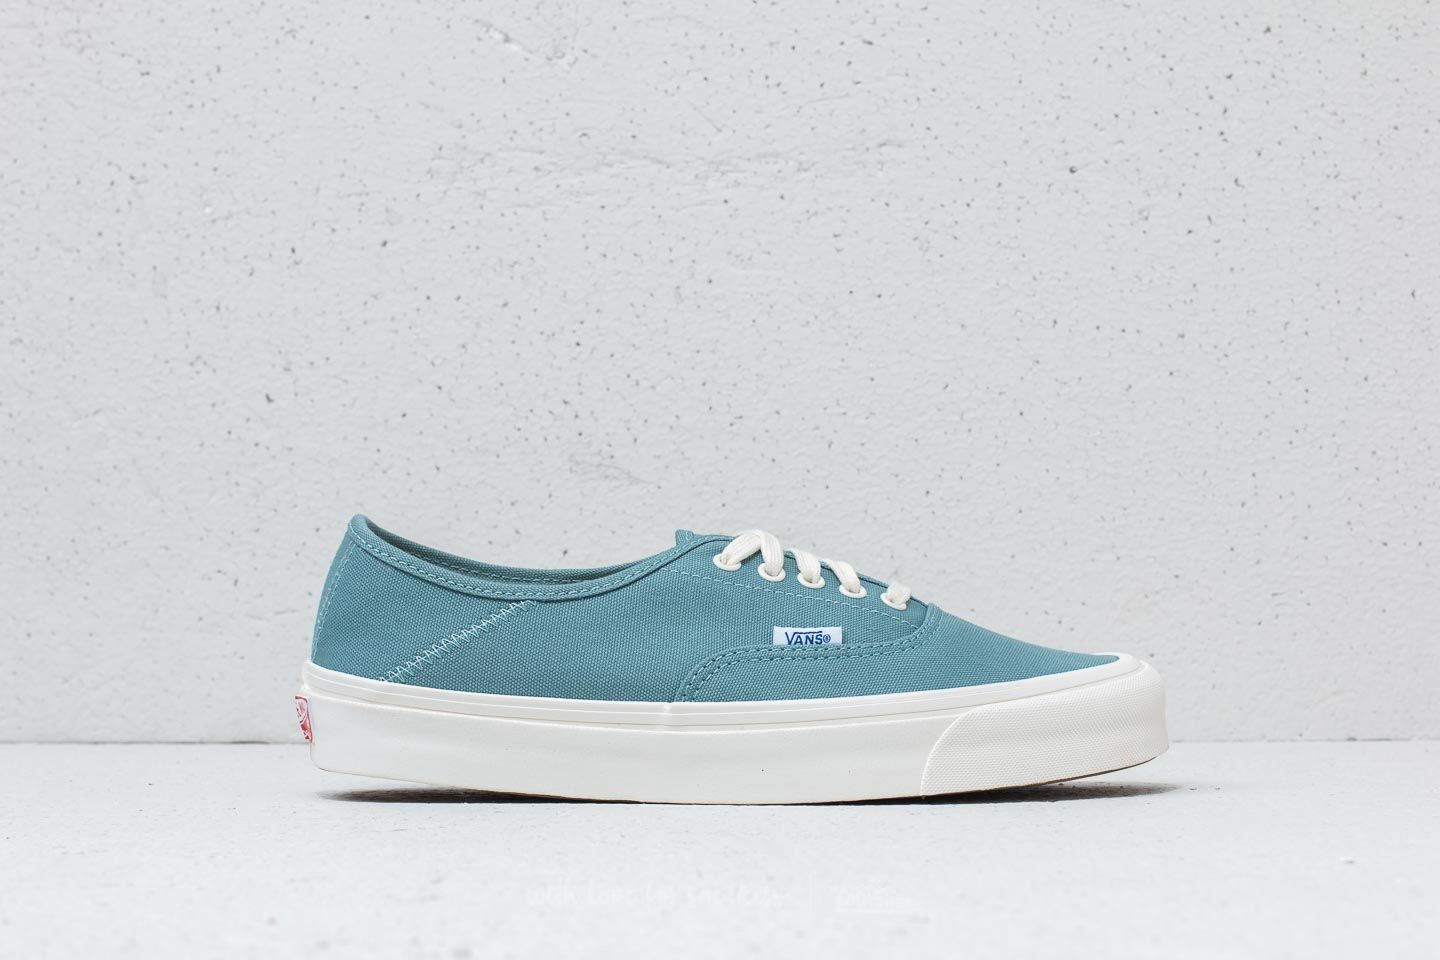 520427dd71f08c Vans OG Style 43 LX (Canvas) Smoke Blue  Marsh at a great price